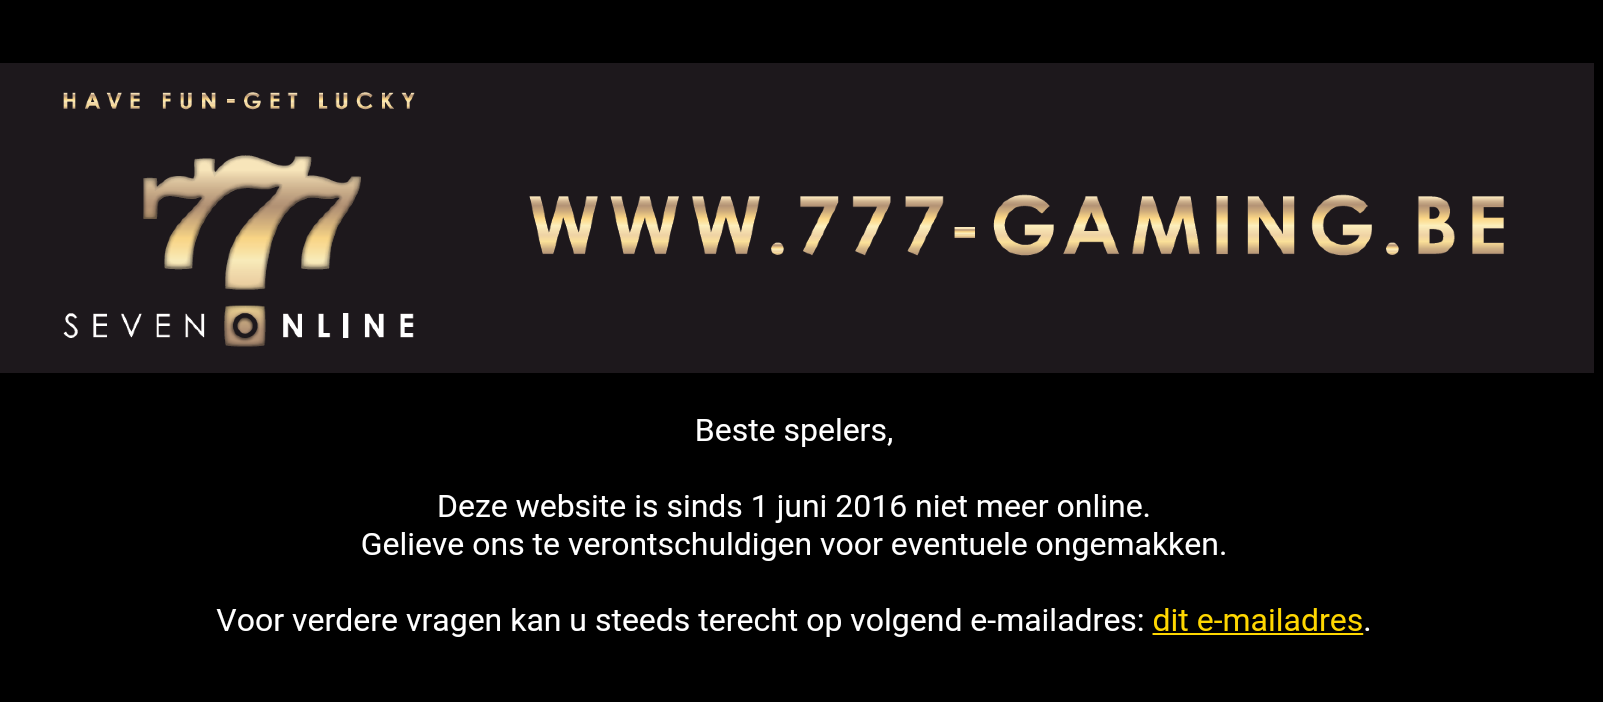 777-Gaming.be is gestopt wat is een goed alternatief?